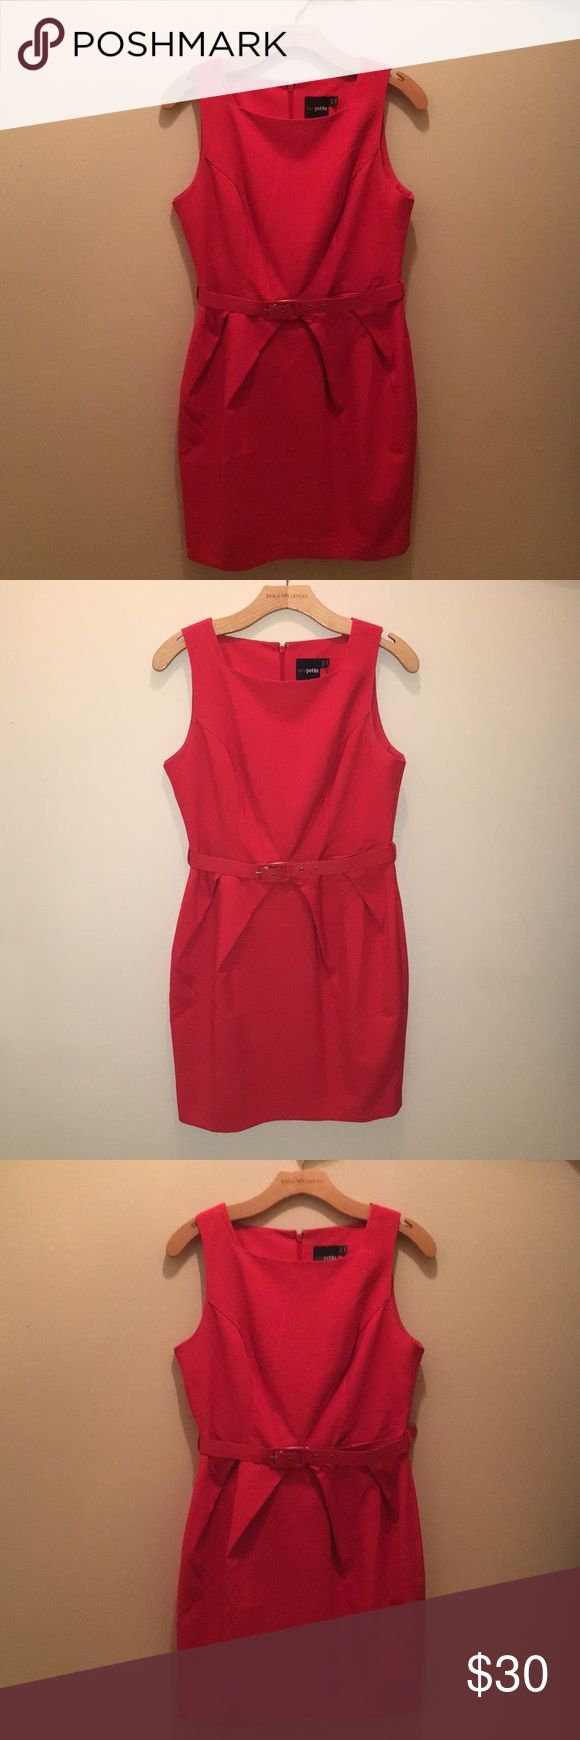 ASOS Petite US Size 8 Belted Dress Reddish/orange ASOS Petite pleated mini dress with belt. Great for day to day or business casual looks. Dress is fitted and includes belt loops. Lightly used, great condition. ASOS Petite Dresses Mini